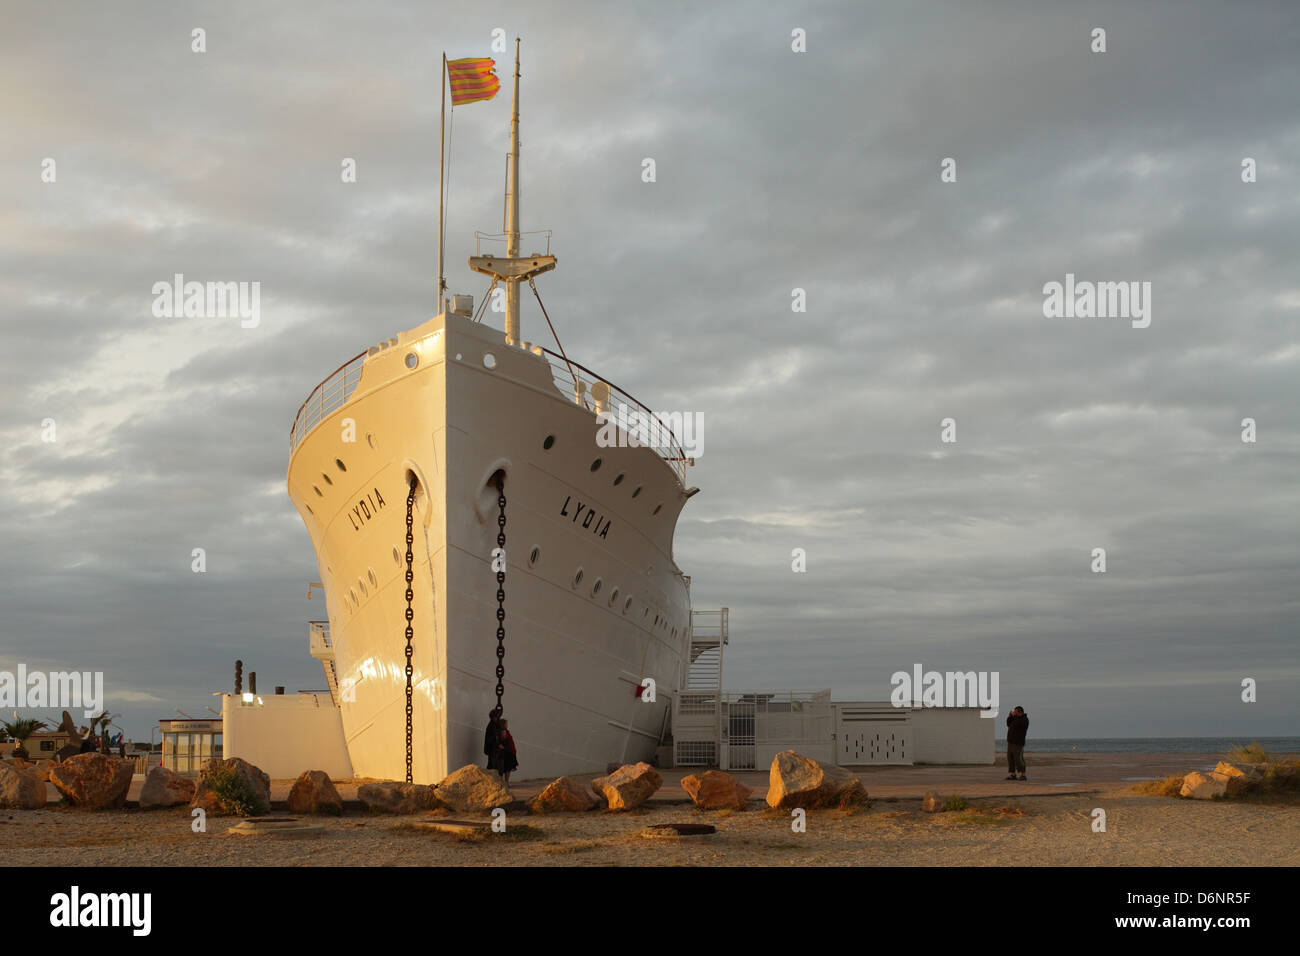 Le Barcares, France, the ship Lydia as a tourist attraction in the seaside resort of Le Barcares - Stock Image